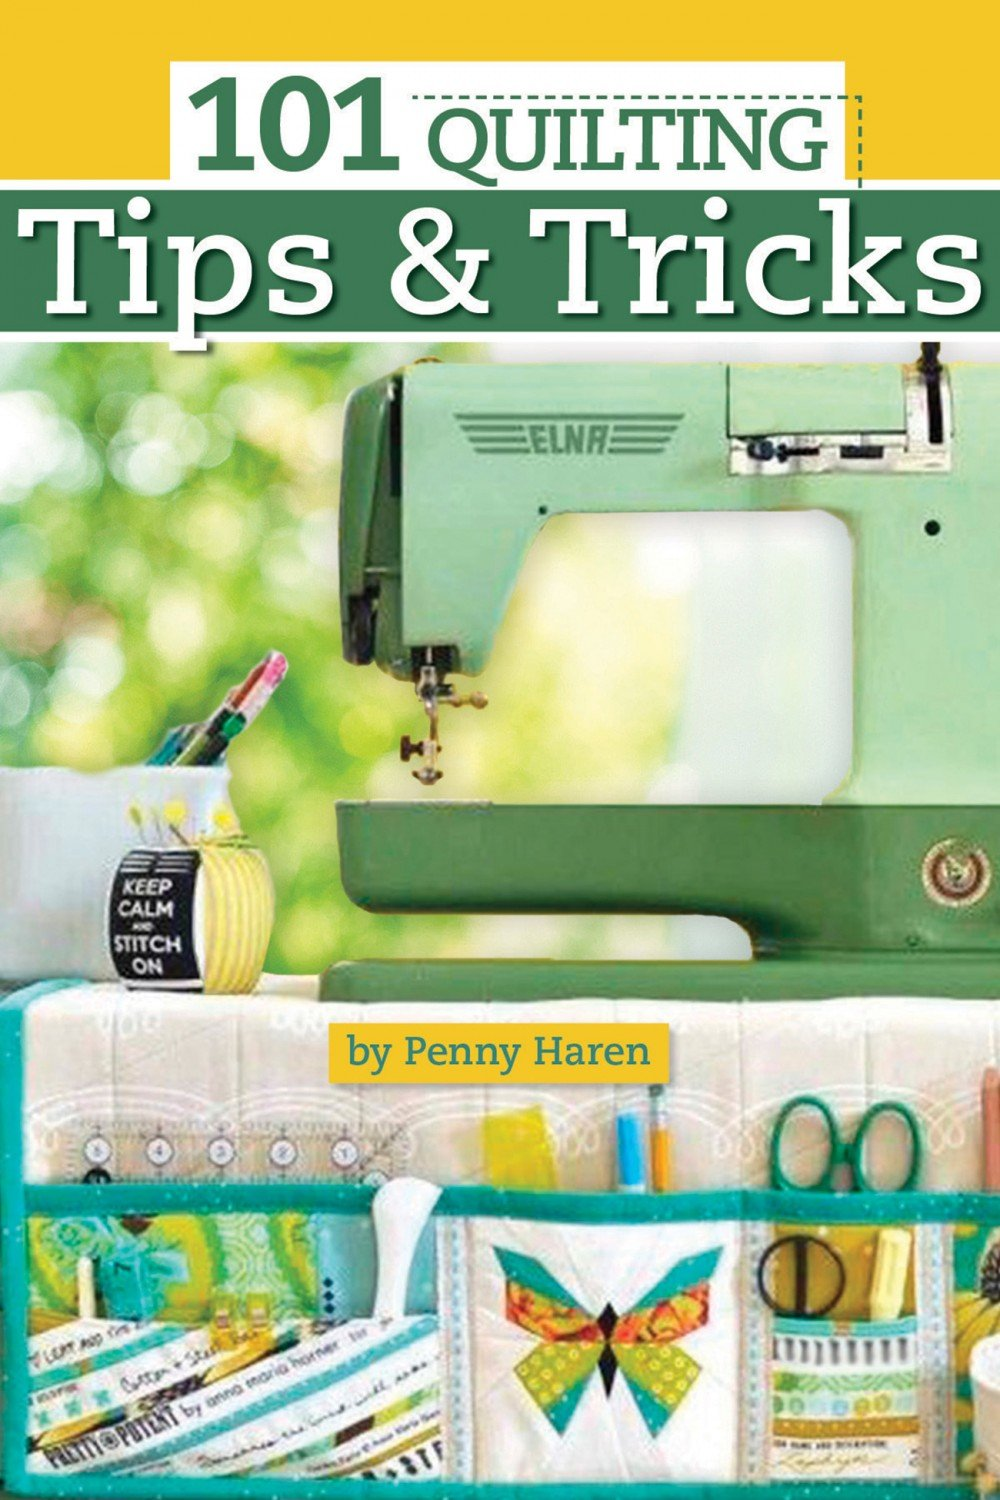 101 Quilting Tips & Tricks Pocket Guide - Softcover